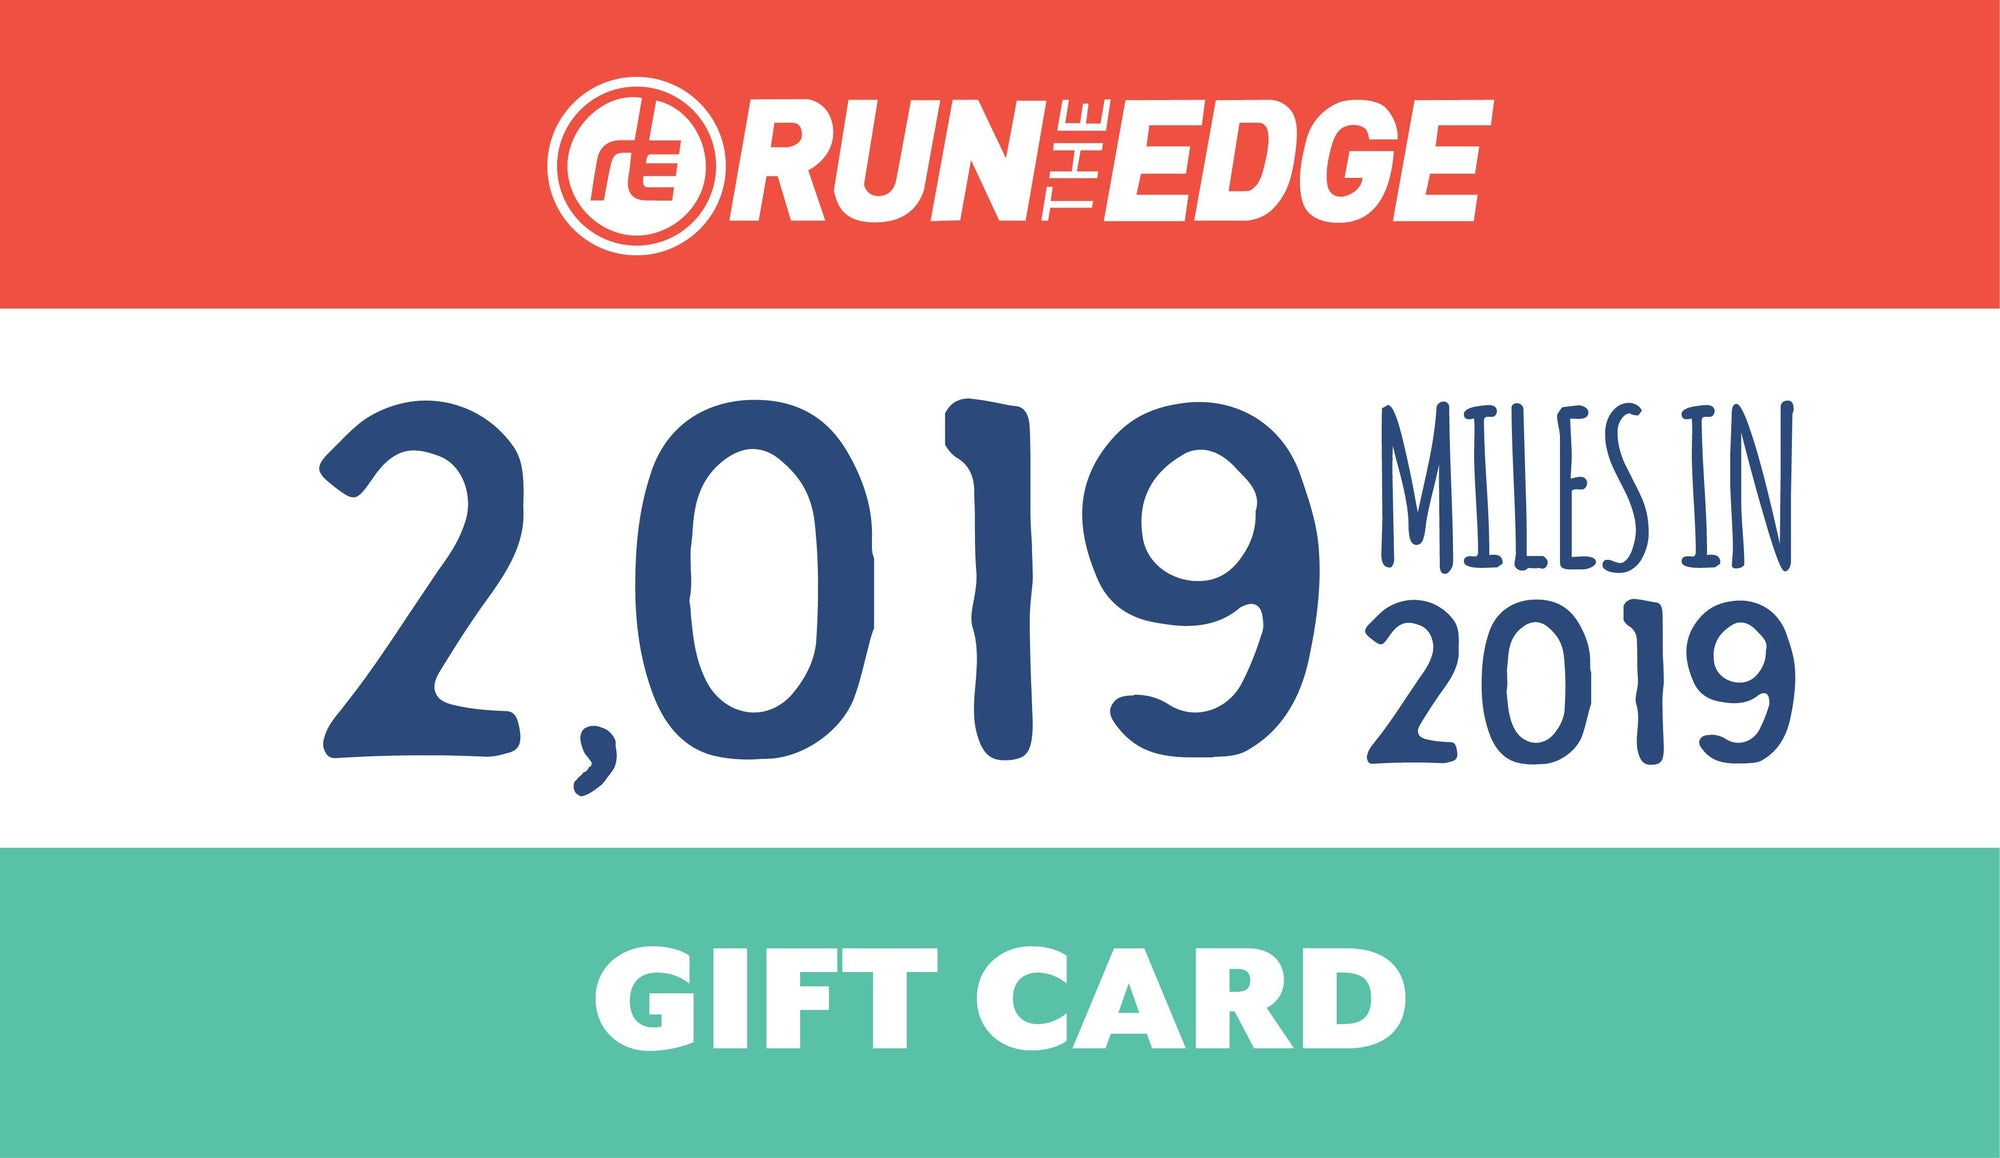 Run The Year 2019 Basic Registration Gift Card gift card Run The Edge